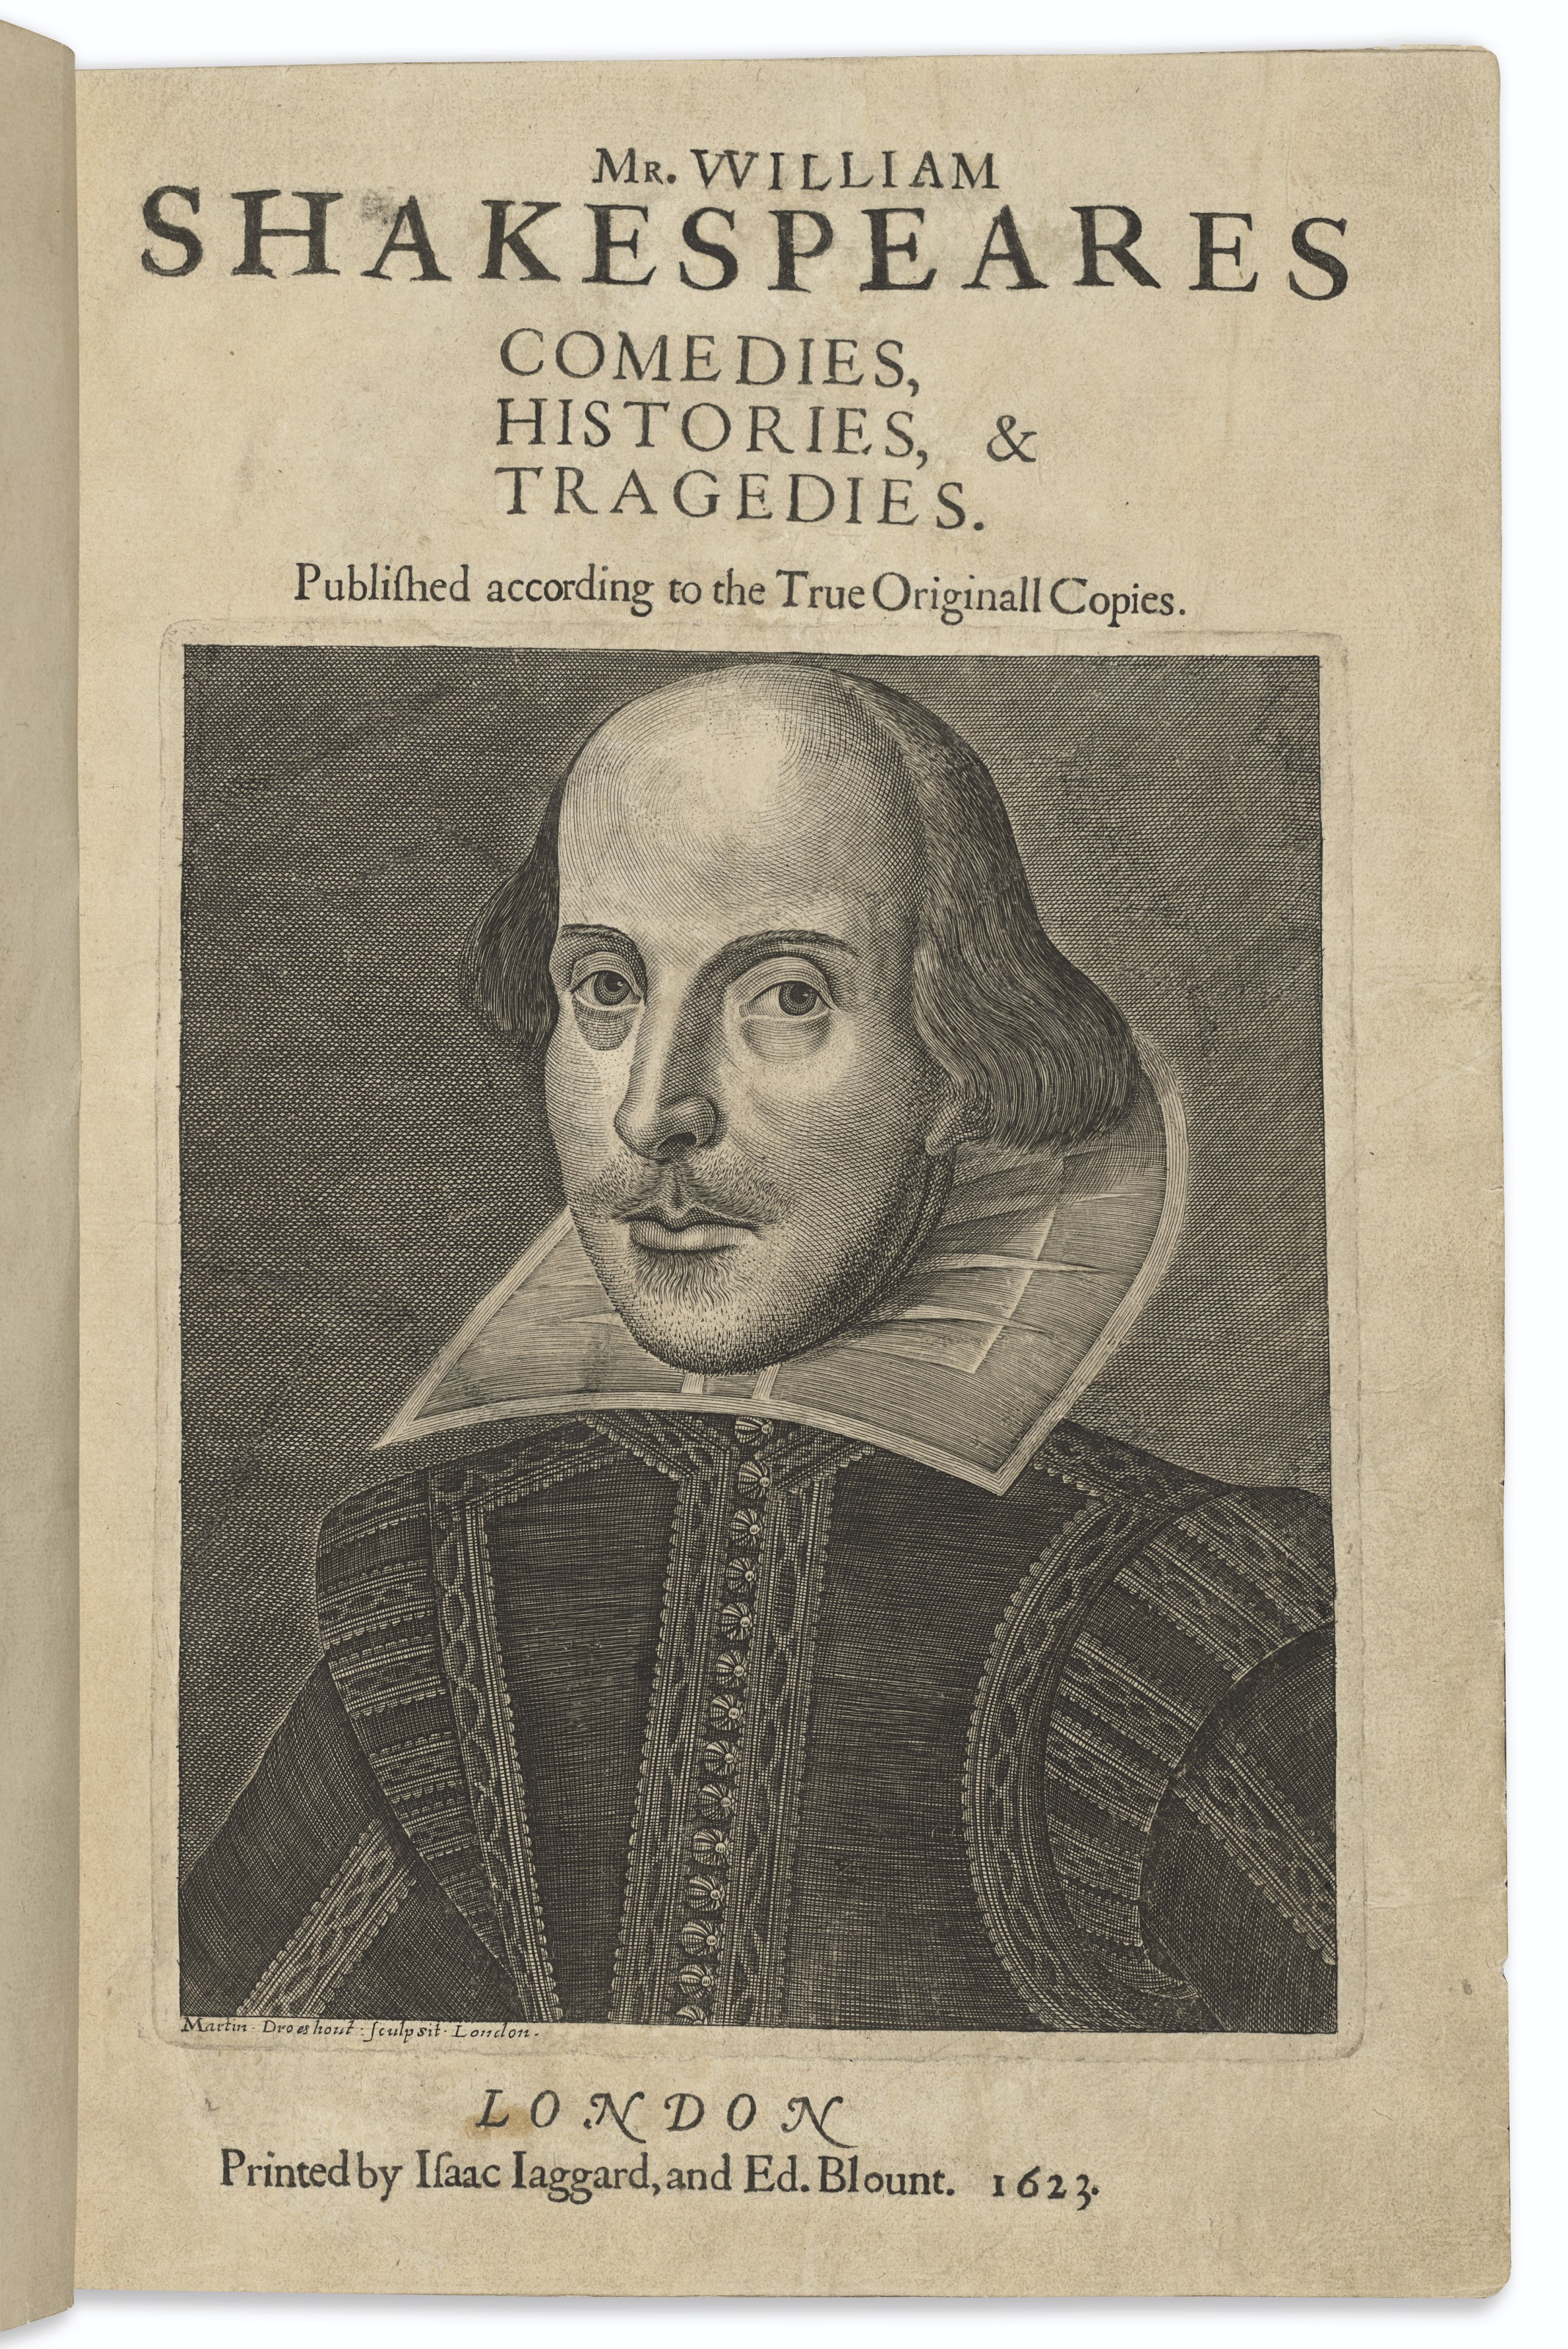 SHAKESPEARE, William (1564-1616). Comedies, Histories, and Tragedies. Published according to the True Originall Copies. Edited by John Heminges (d. 1630) and Henry Condell (d. 1627). London: Isaac Jaggard and Edward Blount at the Charges of W. Jaggard, Ed. Blount, I. Smithweeke, and W. Aspley, 1623.